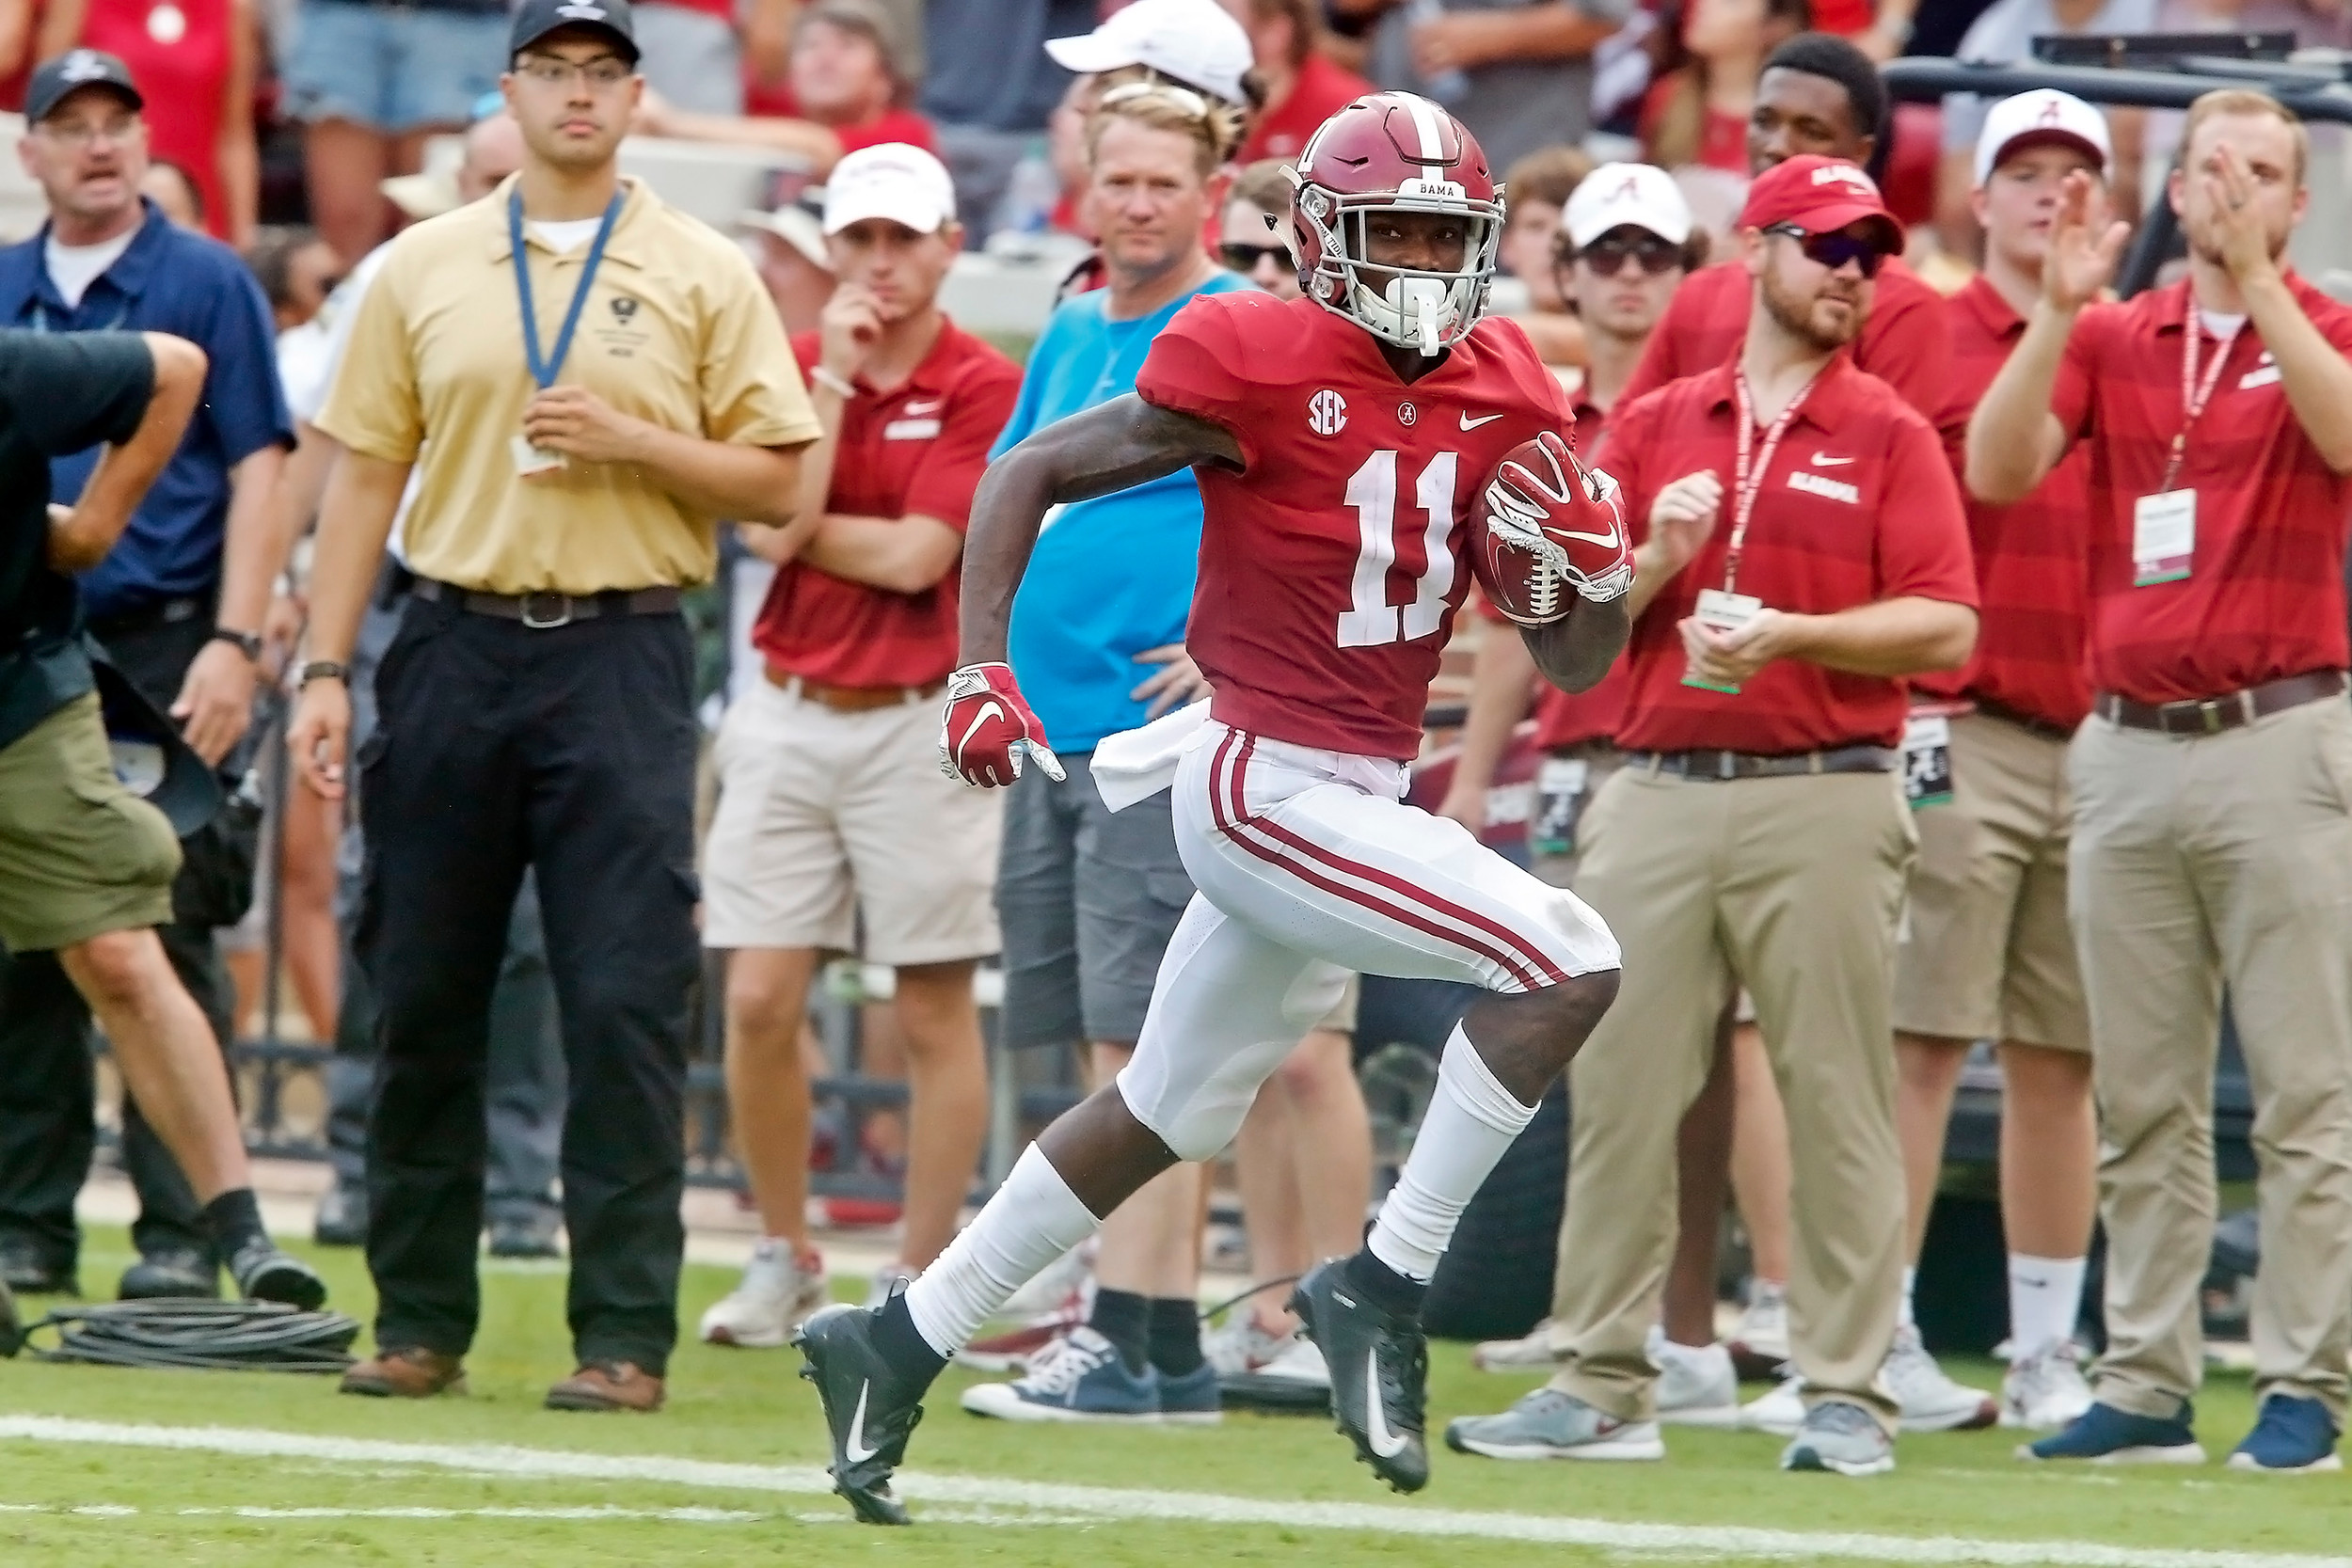 Alabama Crimson Tide wide receiver Henry Ruggs III (11) scores a touchdown during the game with against the Texas A&M Aggies at Bryant-Denny Stadium.  Jason Clark / Daily Mountain Eagle